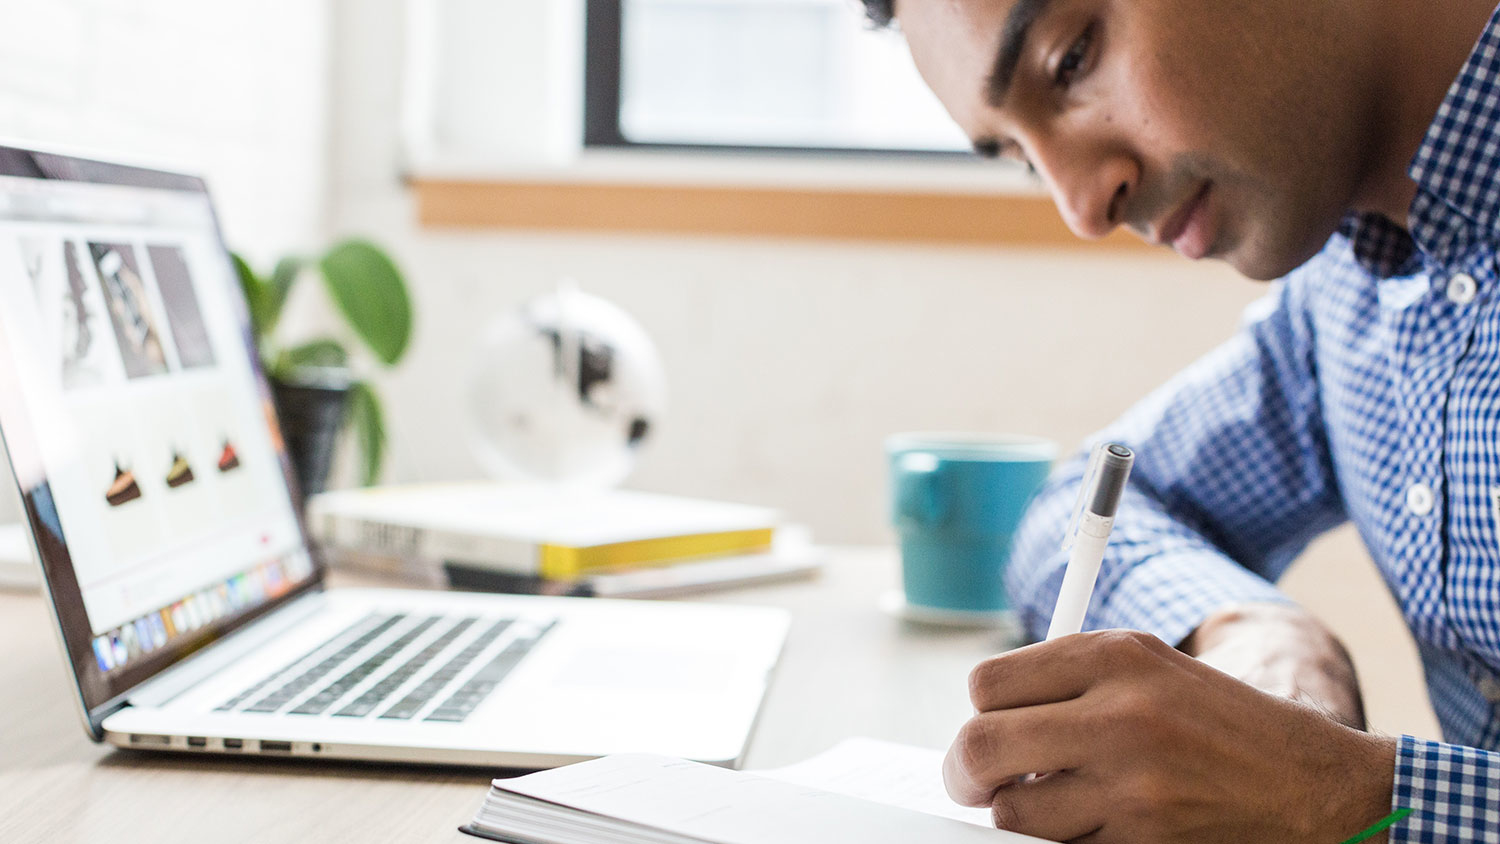 Young man taking notes and working on laptop